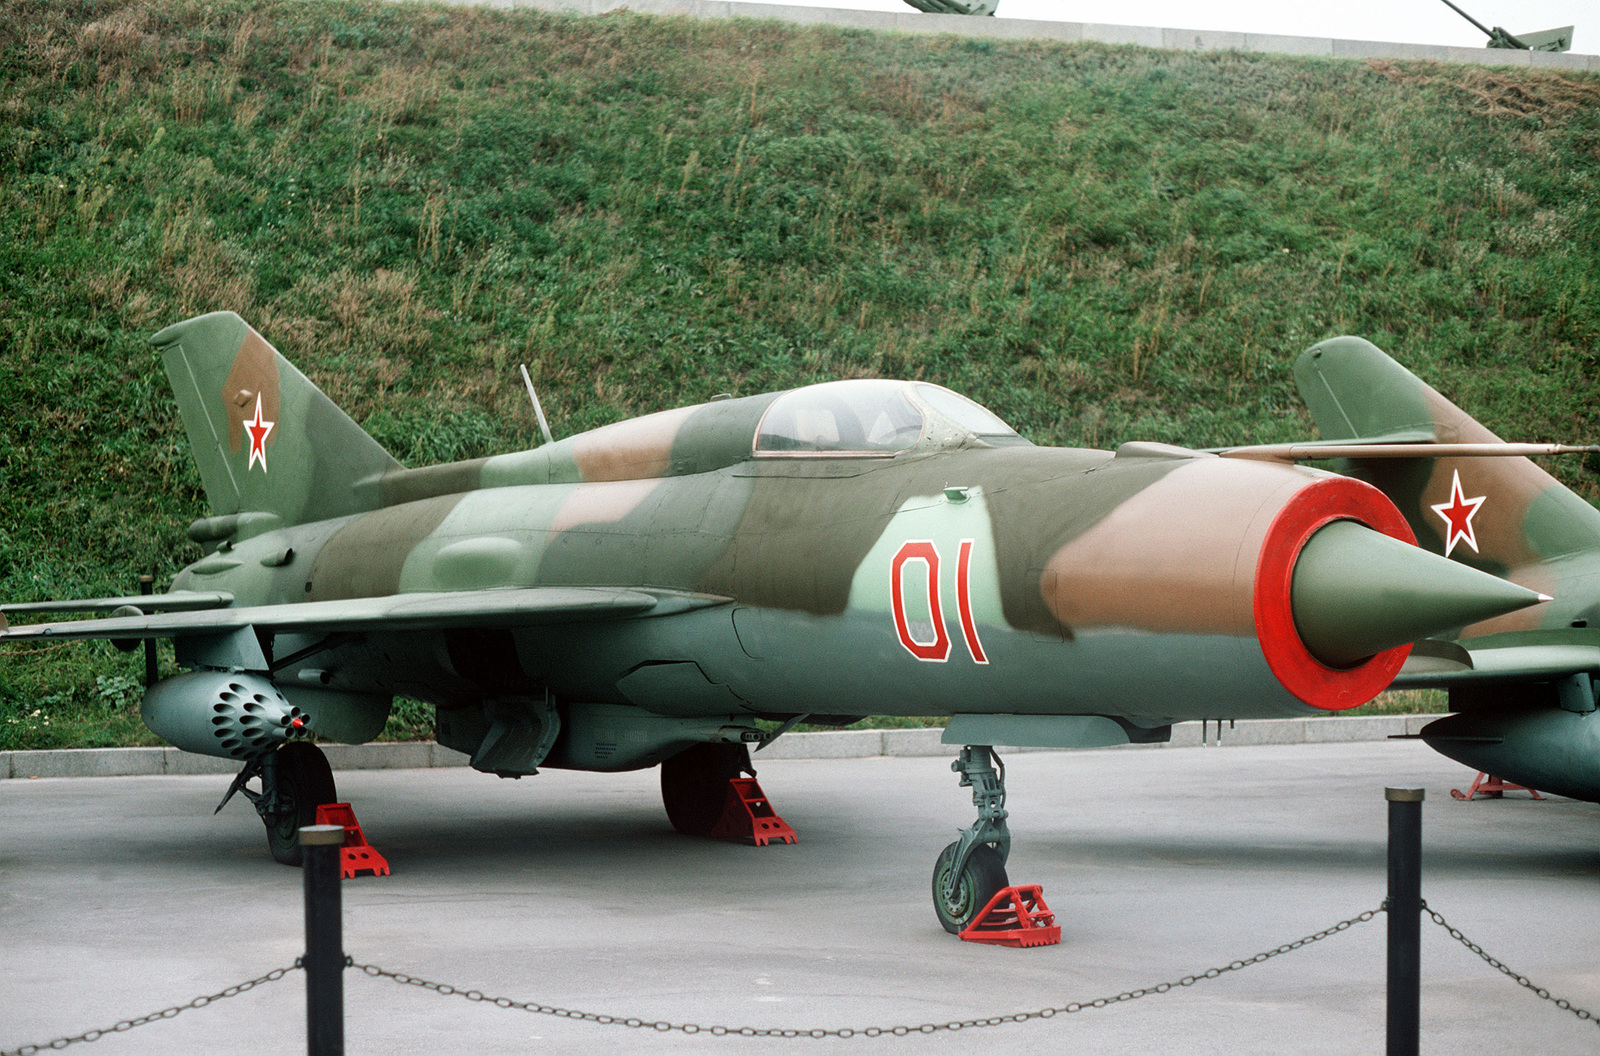 Right front view of a Soviet MiG-21 Fishbed fighter aircraft showing an UV-16 rocket